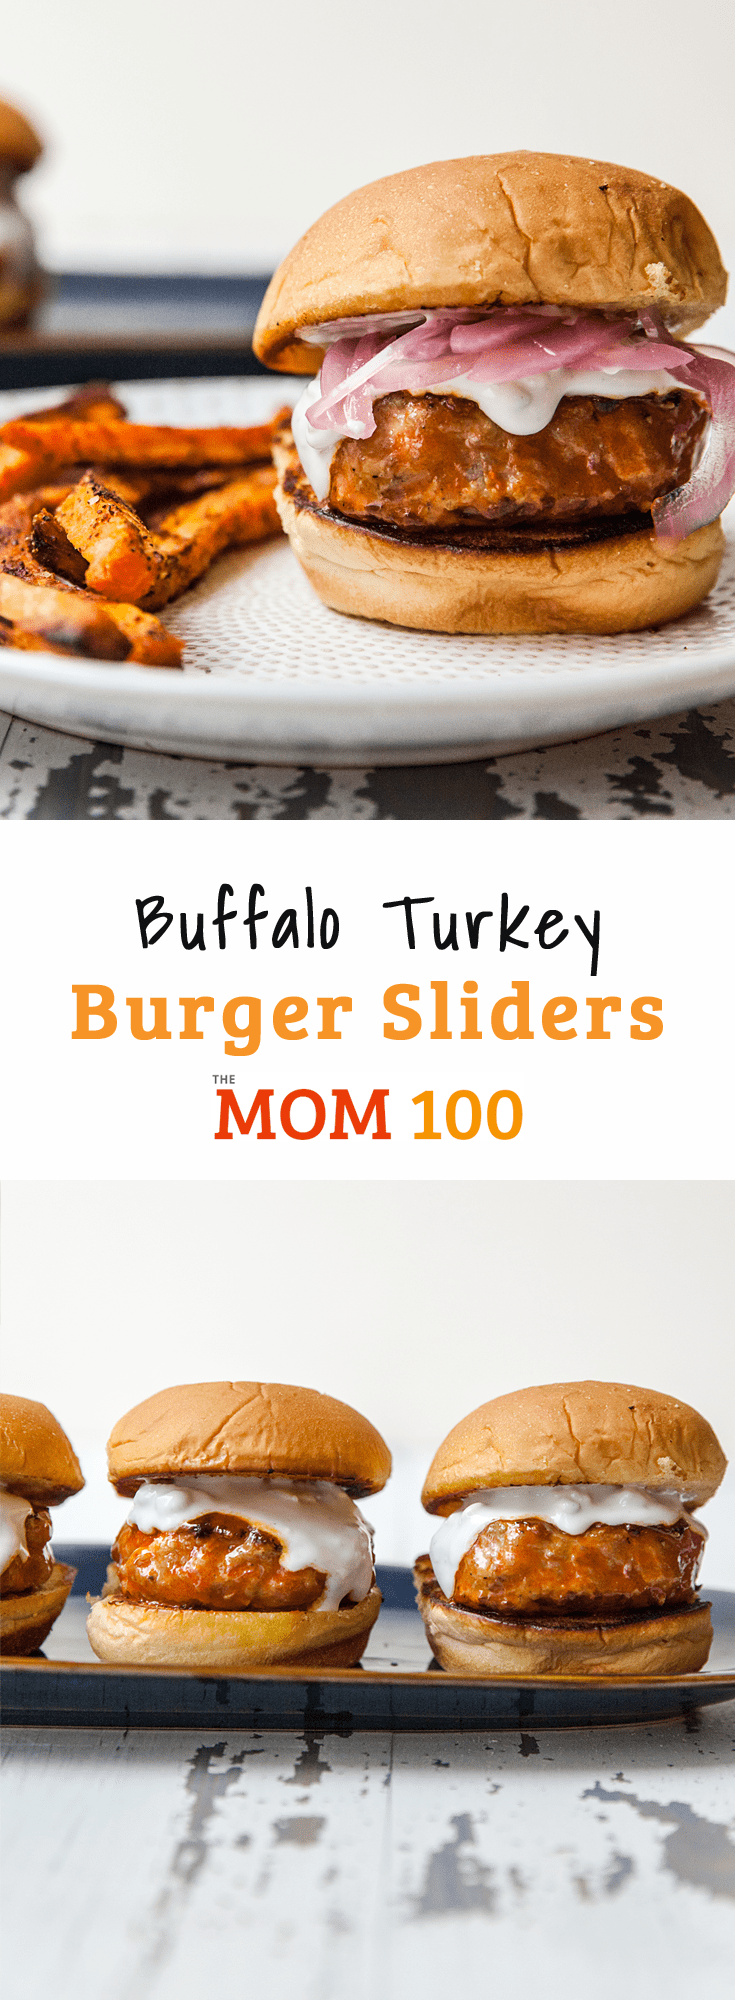 Buffalo Turkey Burger Sliders / Easy buffalo turkey burger sliders that will quickly become part of your regular rotation. Who doesn\'t love the idea of comfort-bar food at home?